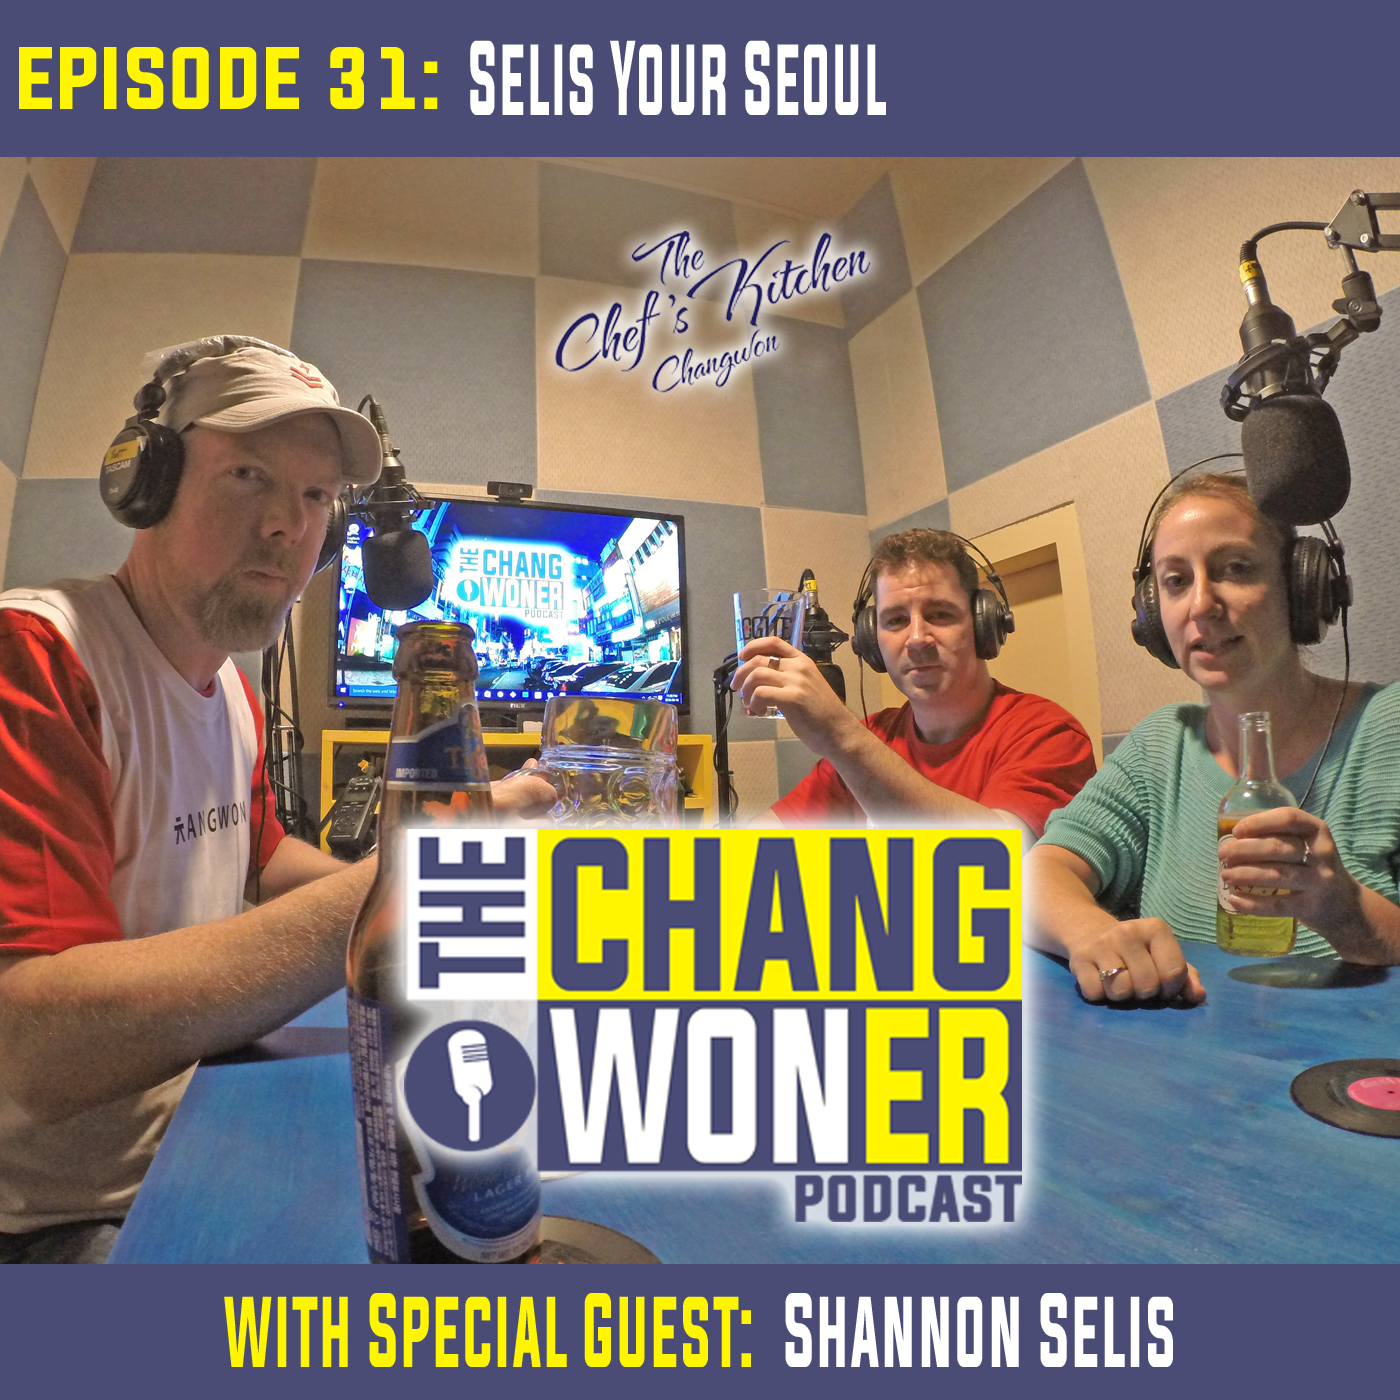 Artwork for Voice Acting and Alternative Jobs from Teaching in South Korea. -guest Shannon Selis (Ep 31)